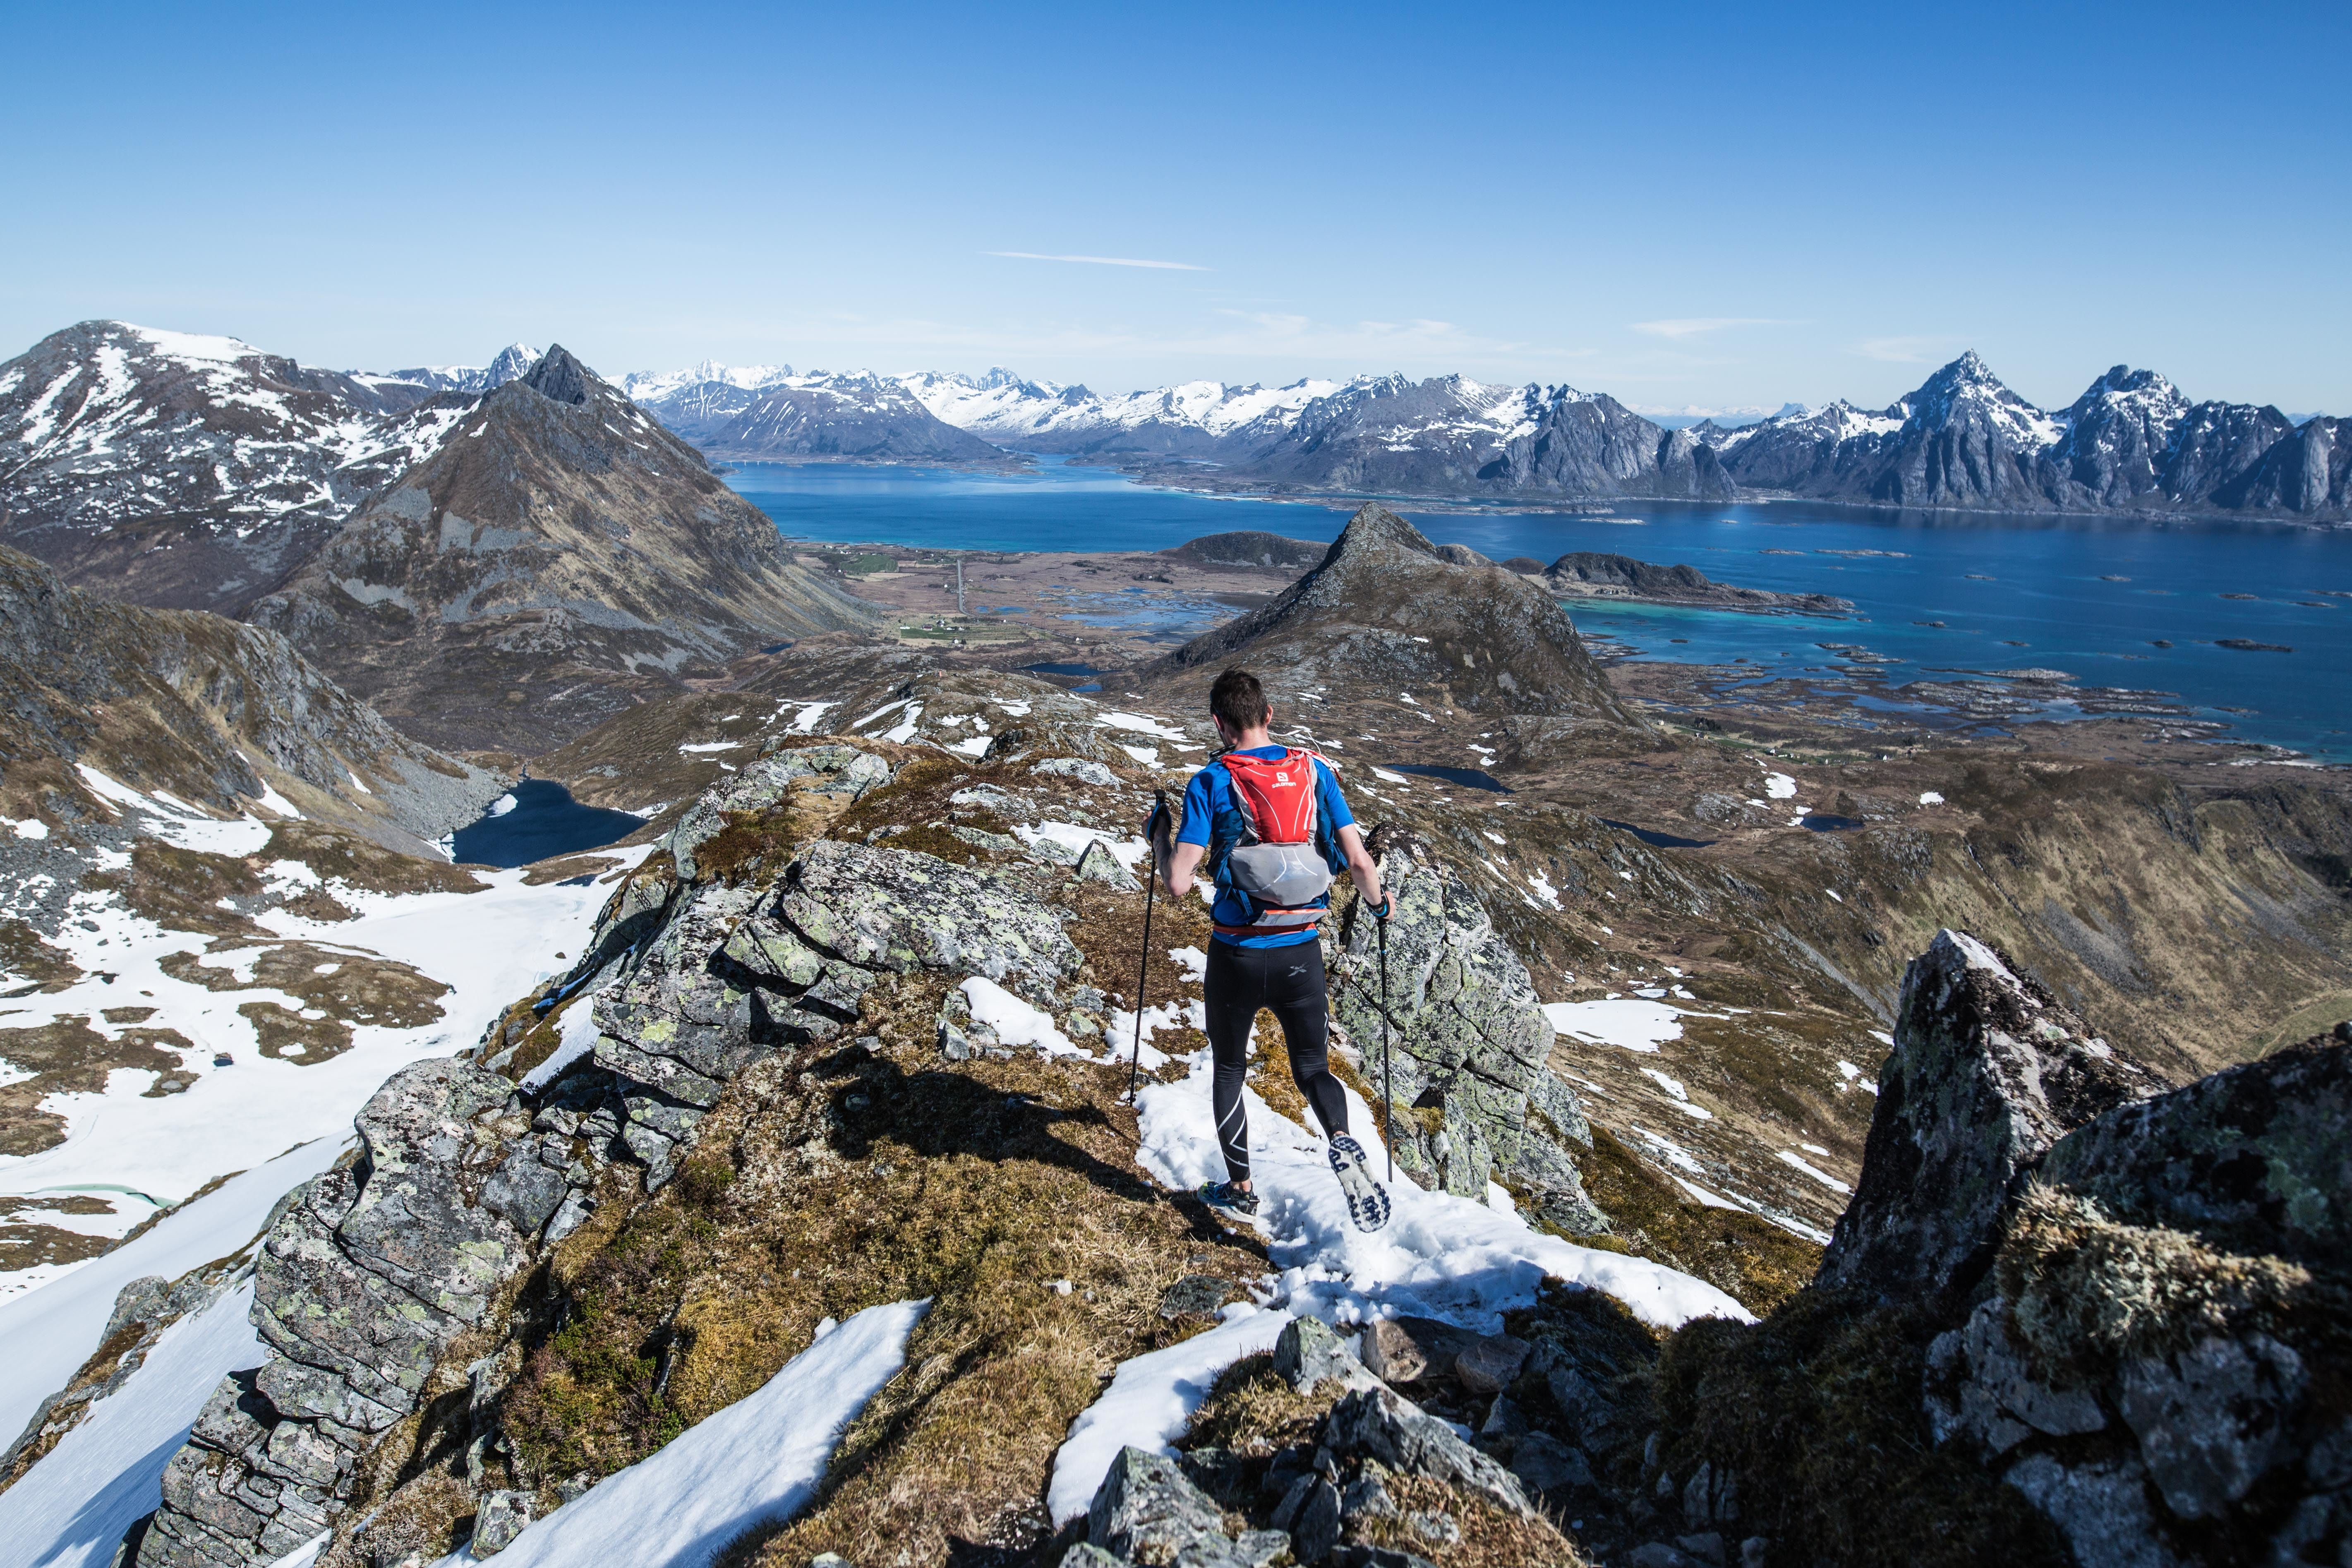 © Alexis Berg // www.thearctictriple.com, Lofoten Ultra-Trail 50 Miles // The Arctic Triple